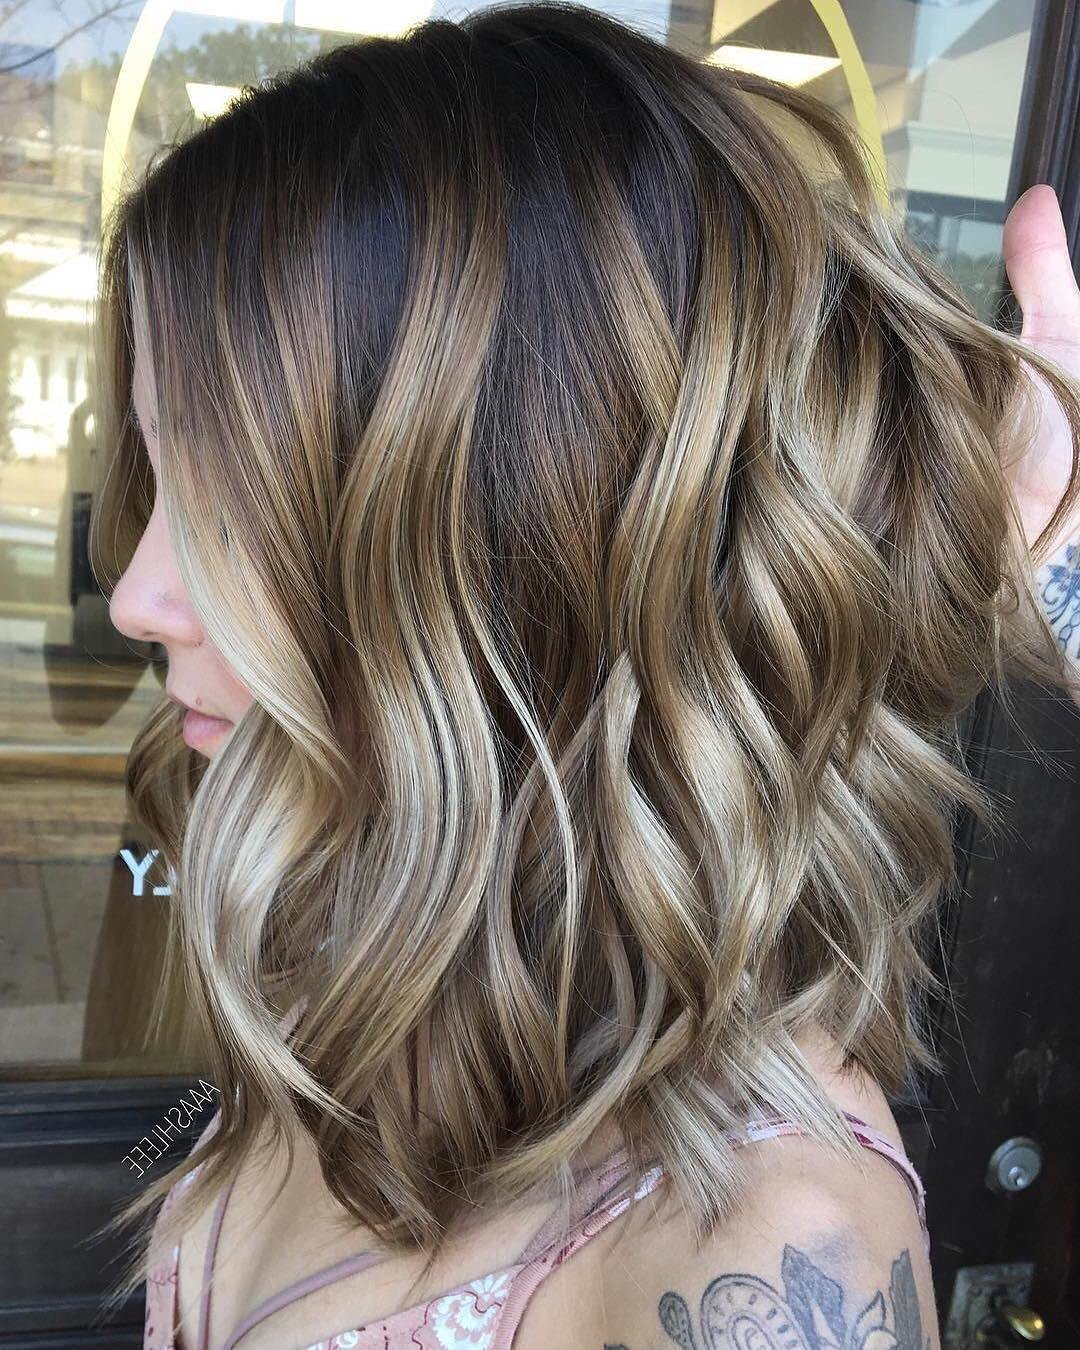 The Best 10 Ombre Balayage Hairstyles For Medium Length Hair Hair Pictures